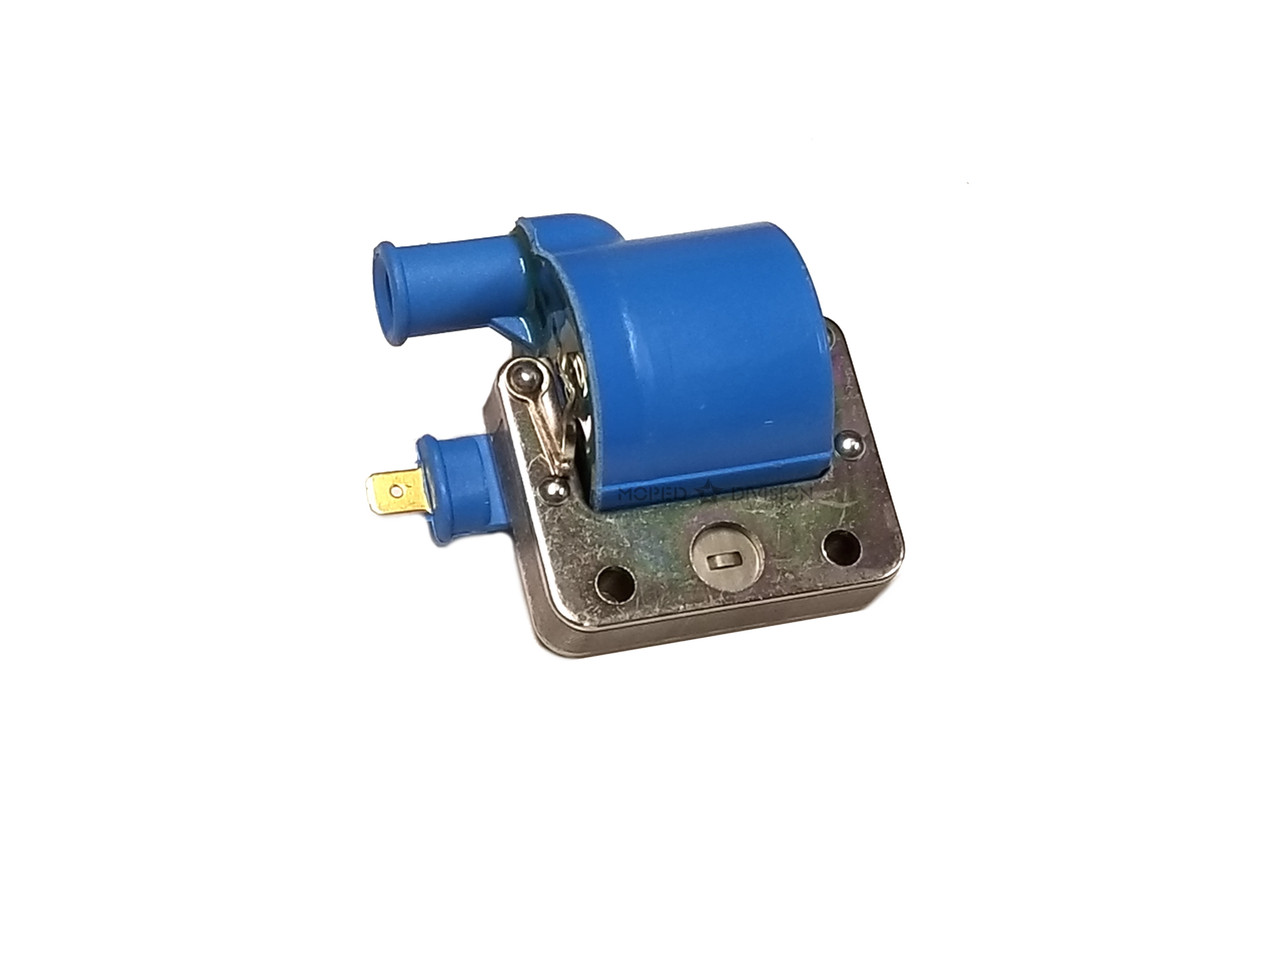 Original Vespa Piaggio Ignition Coil - Blue